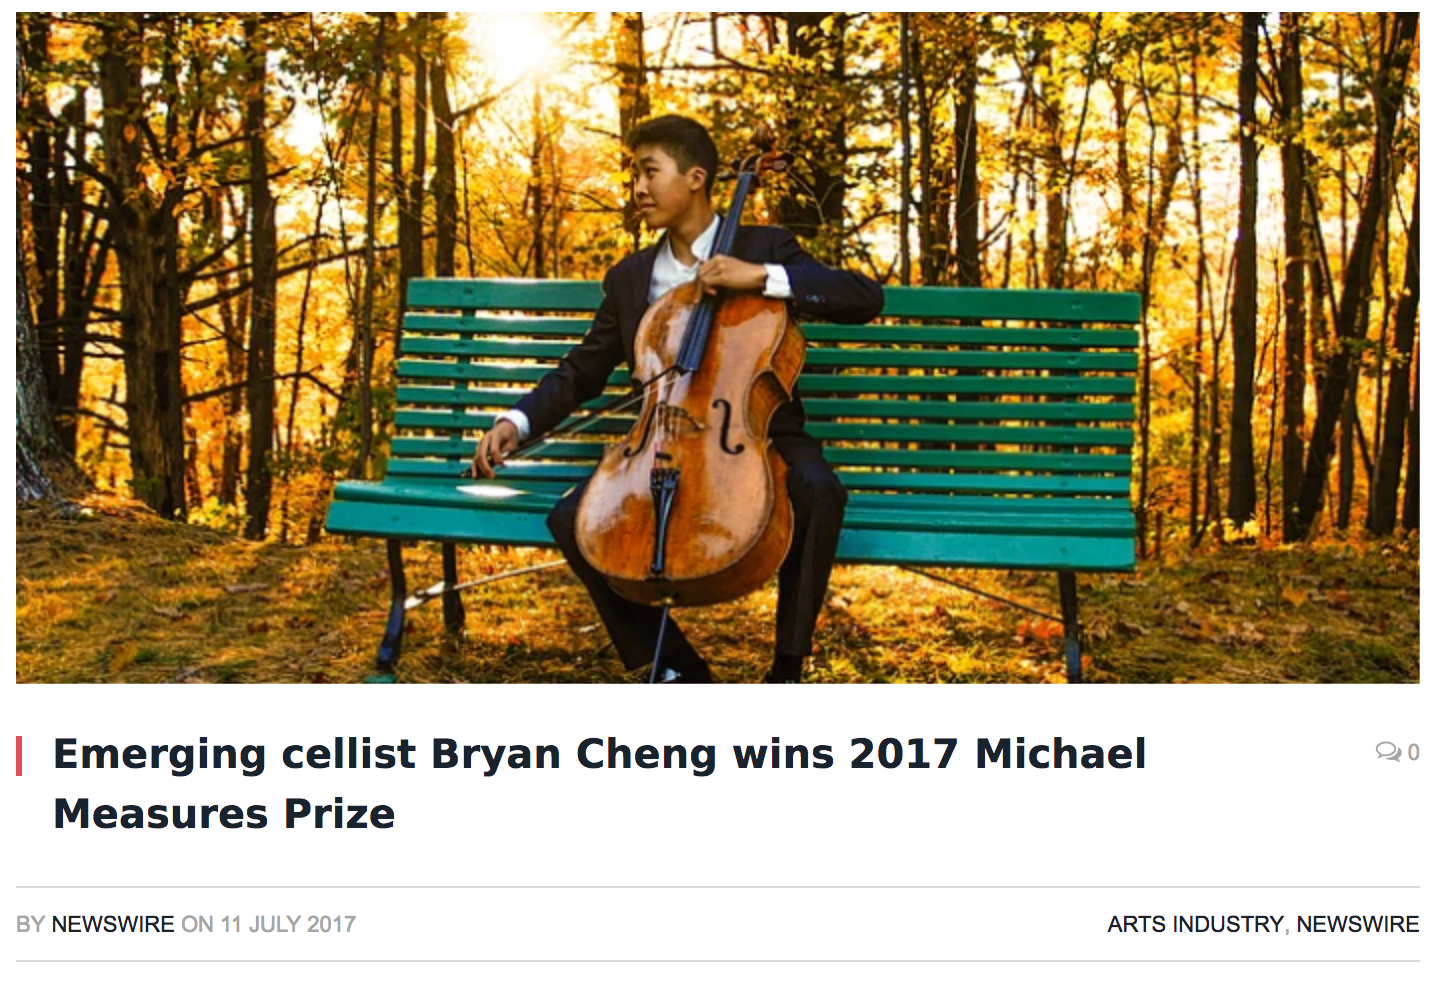 Bryan Cheng wins Michael Measures